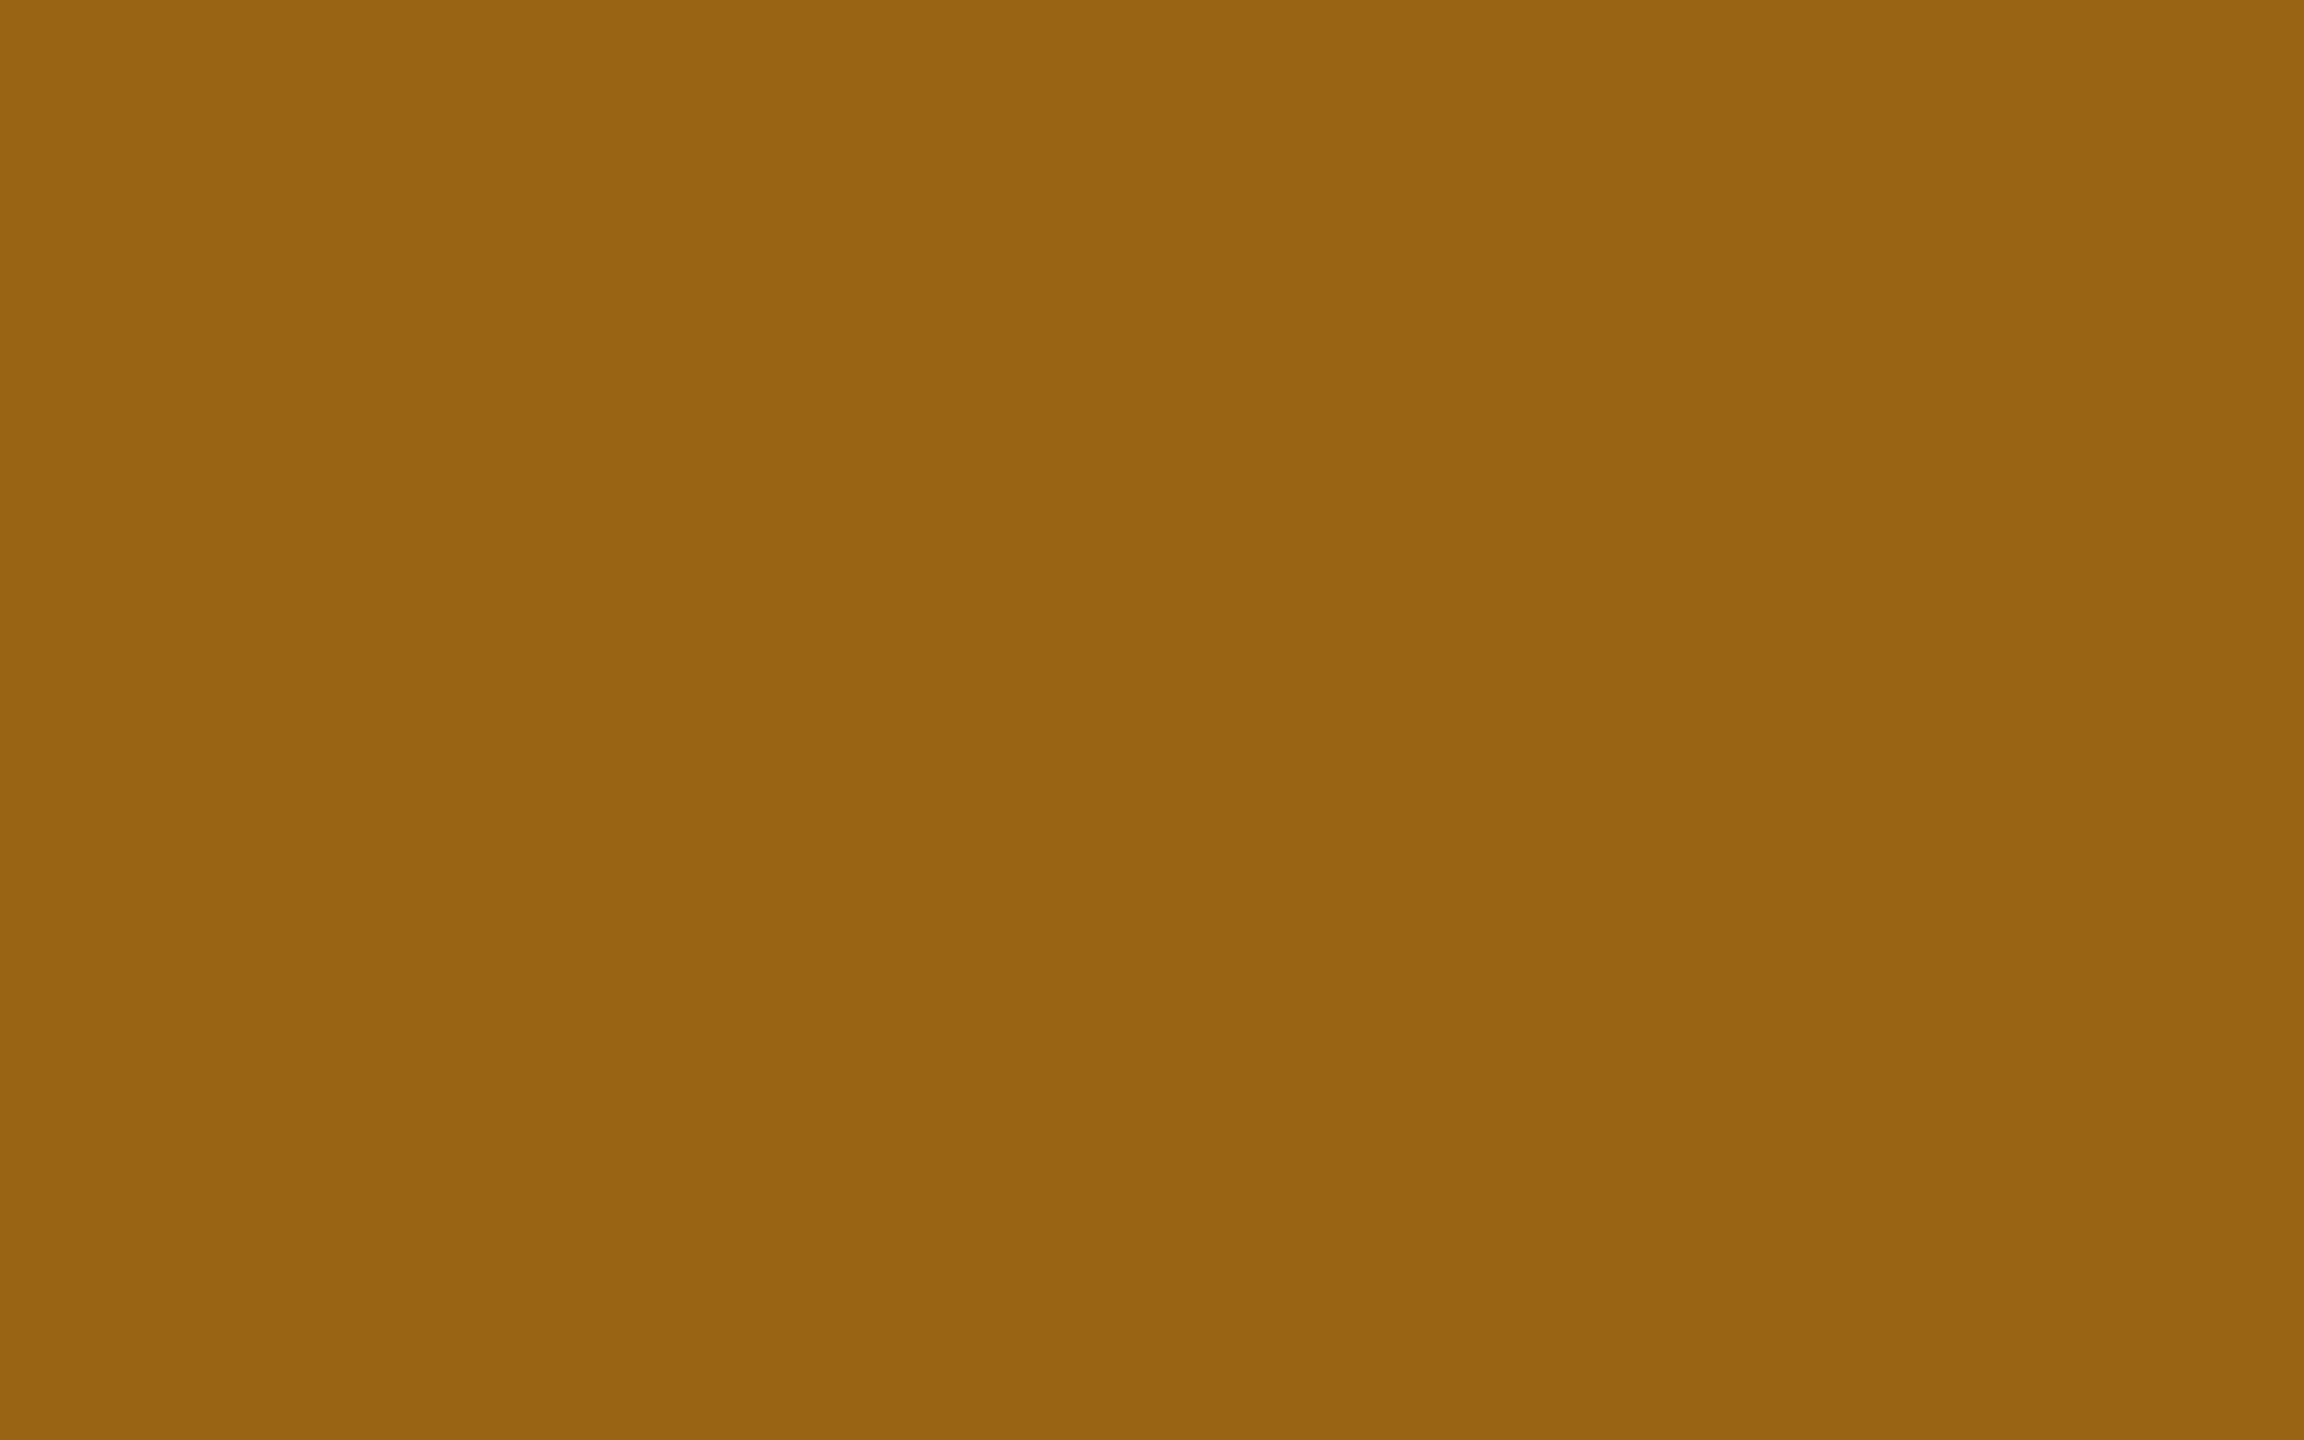 2304x1440 Golden Brown Solid Color Background